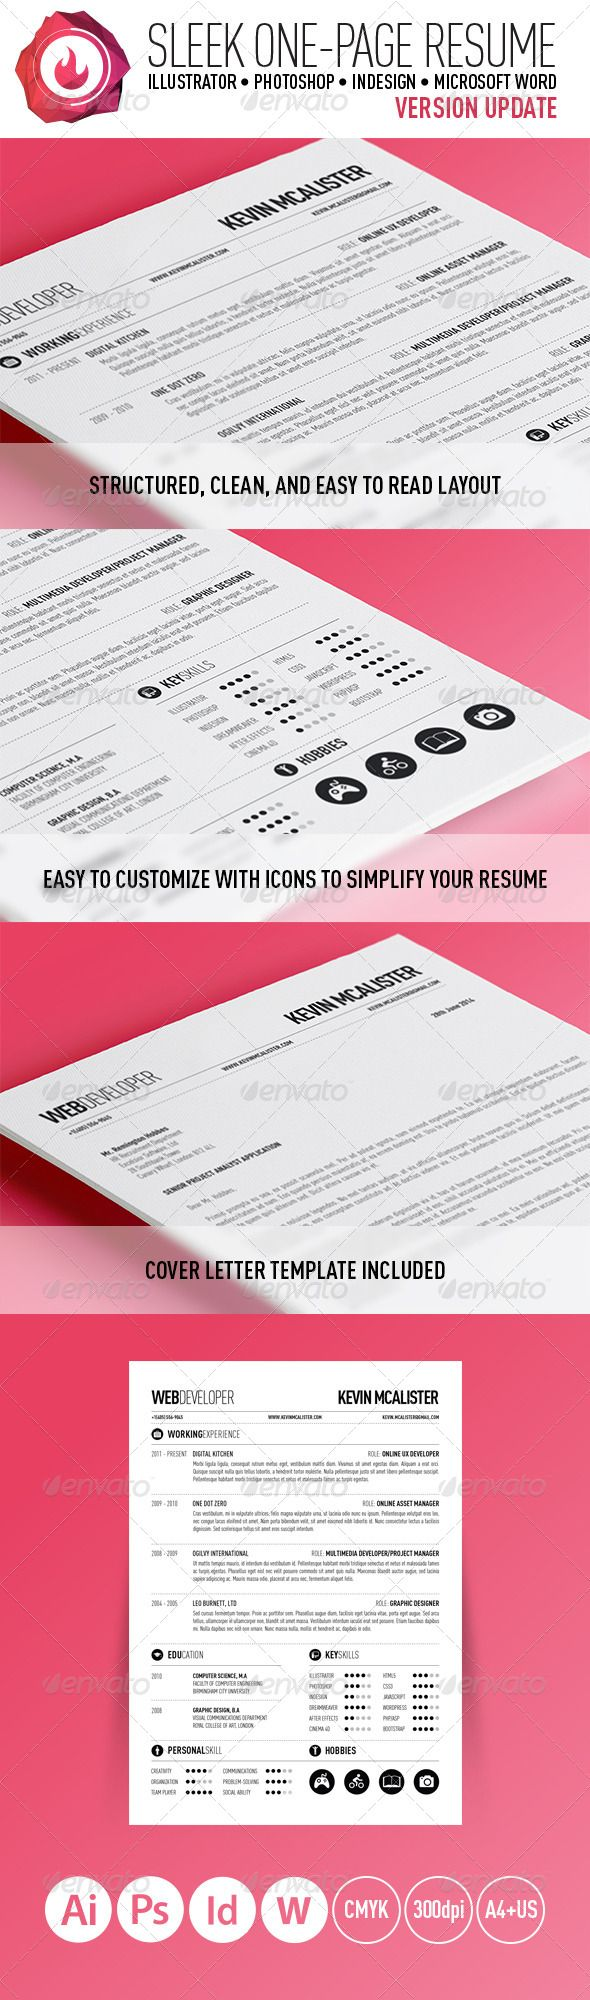 Best  Resume Images On   Other  Resume Cv Resume